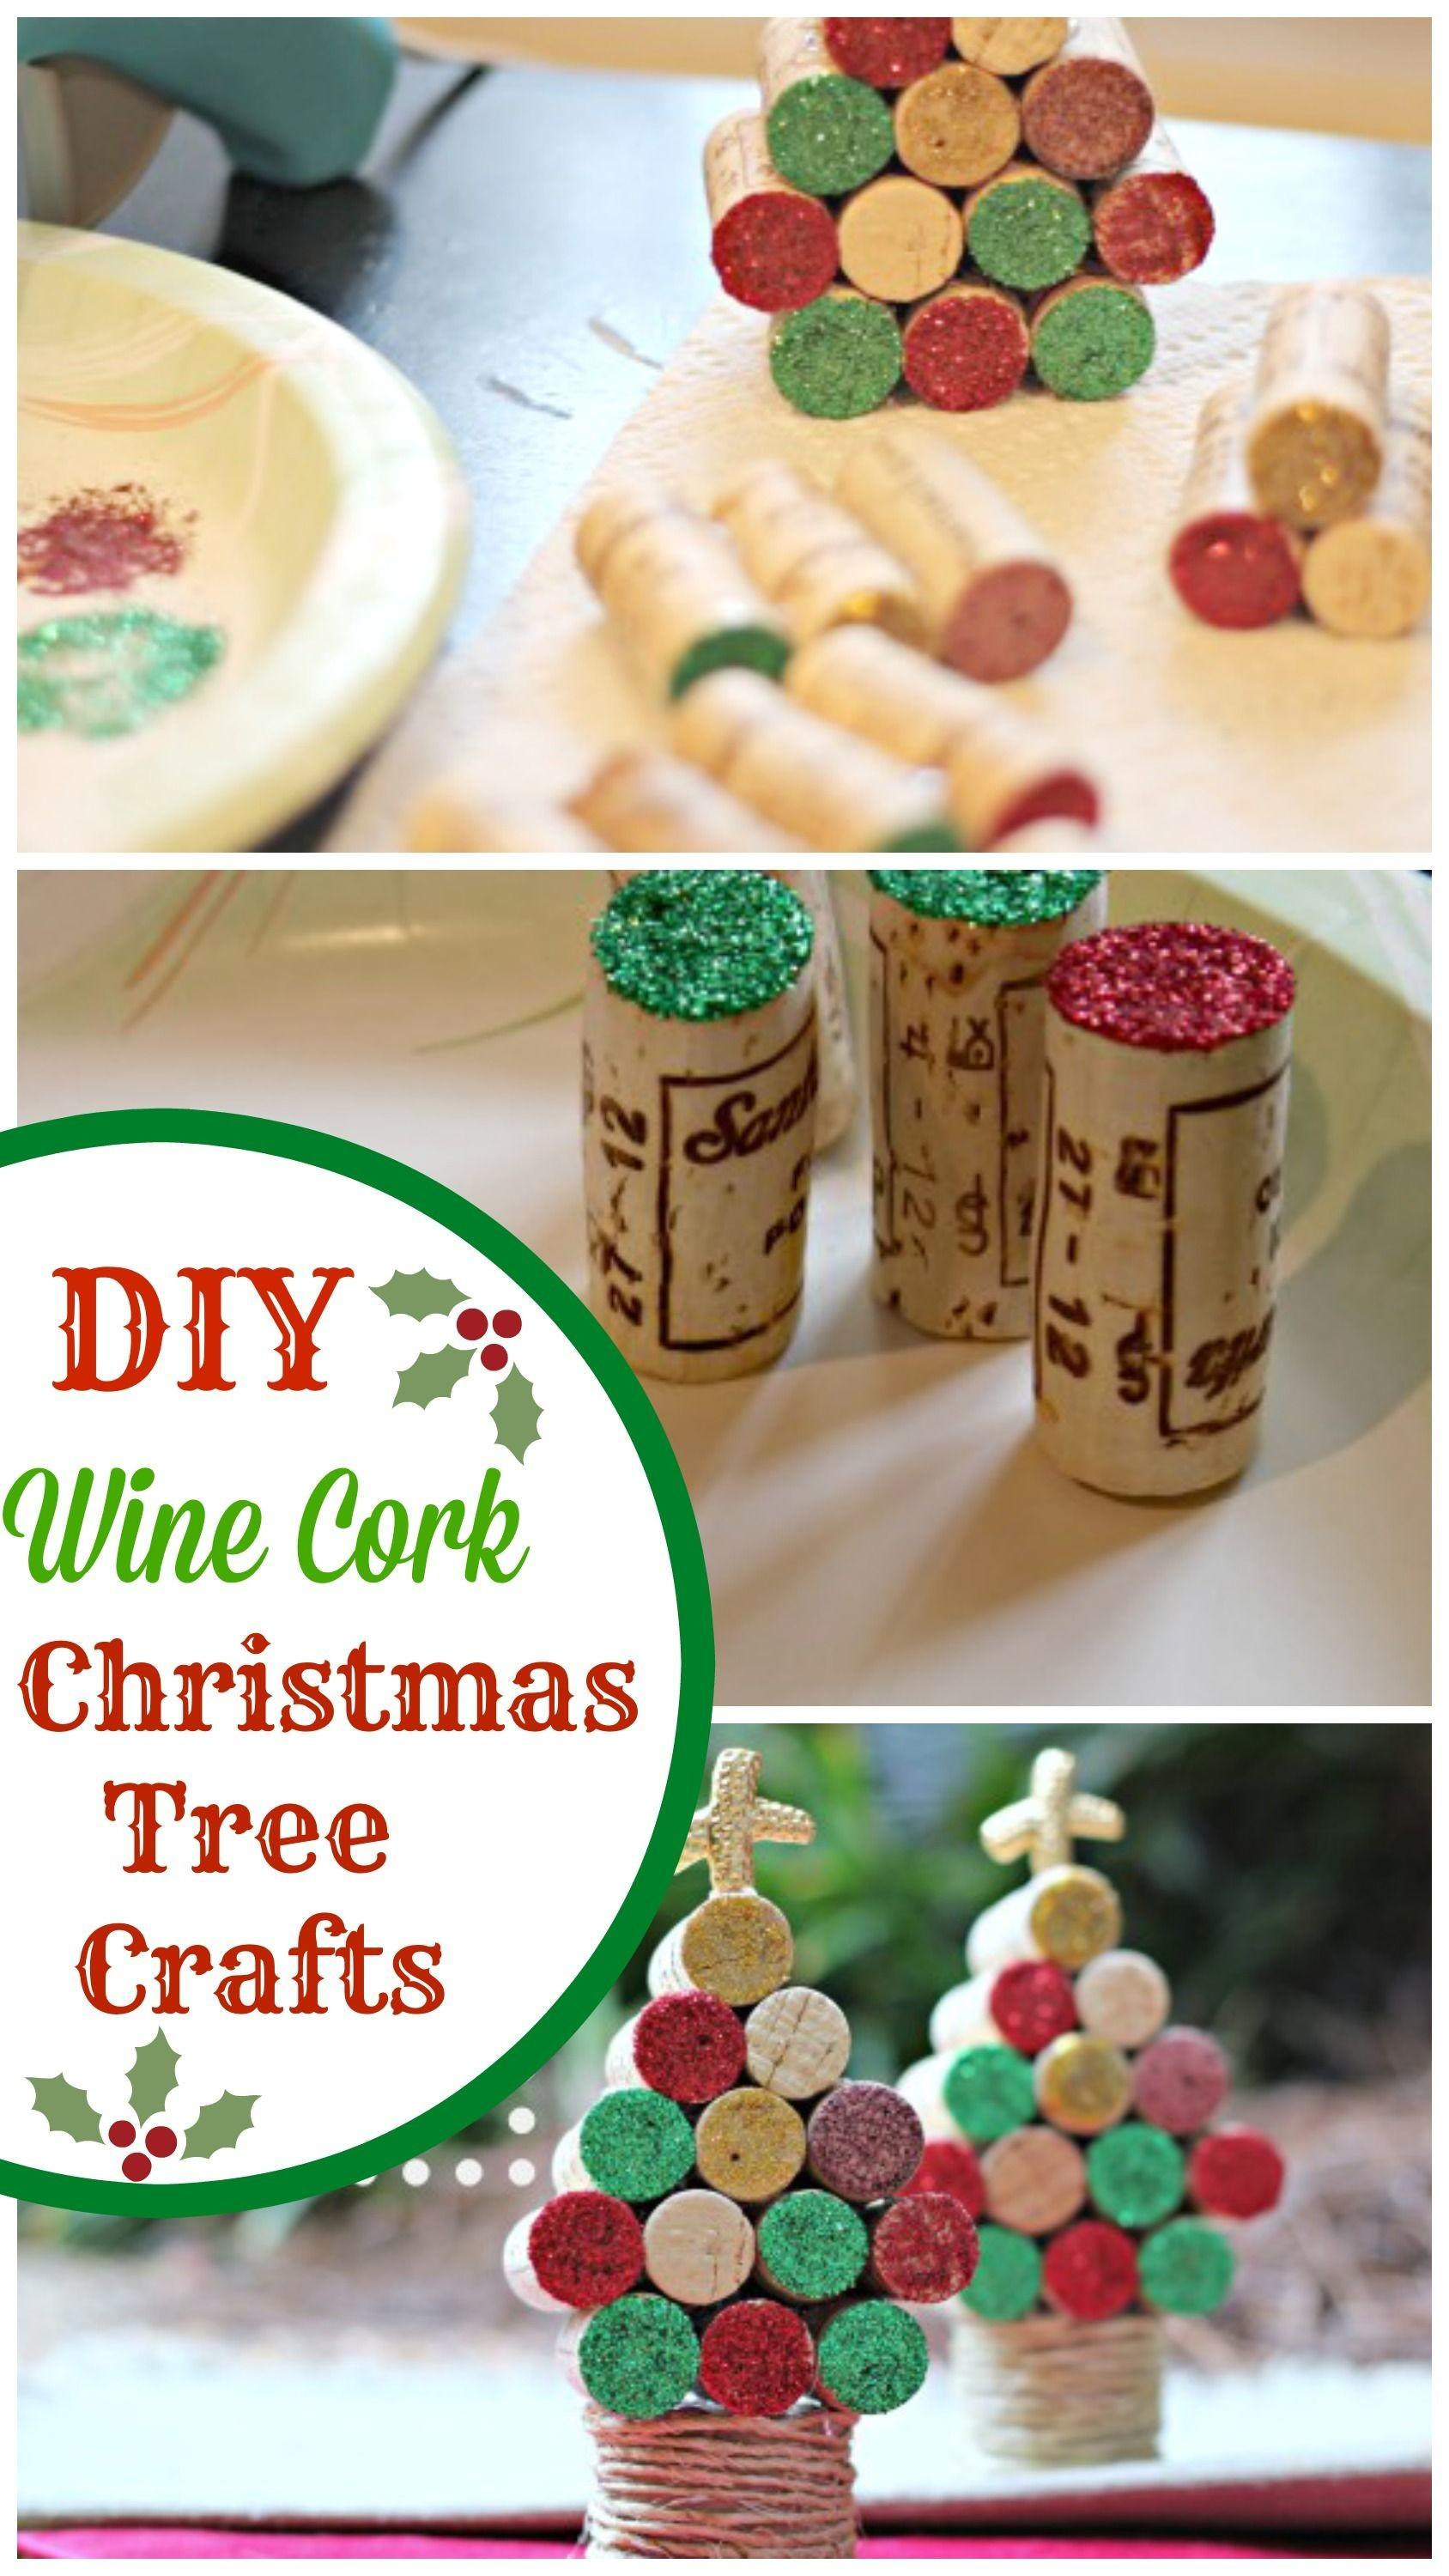 Wine Cork Christmas Tree Crafts Photos